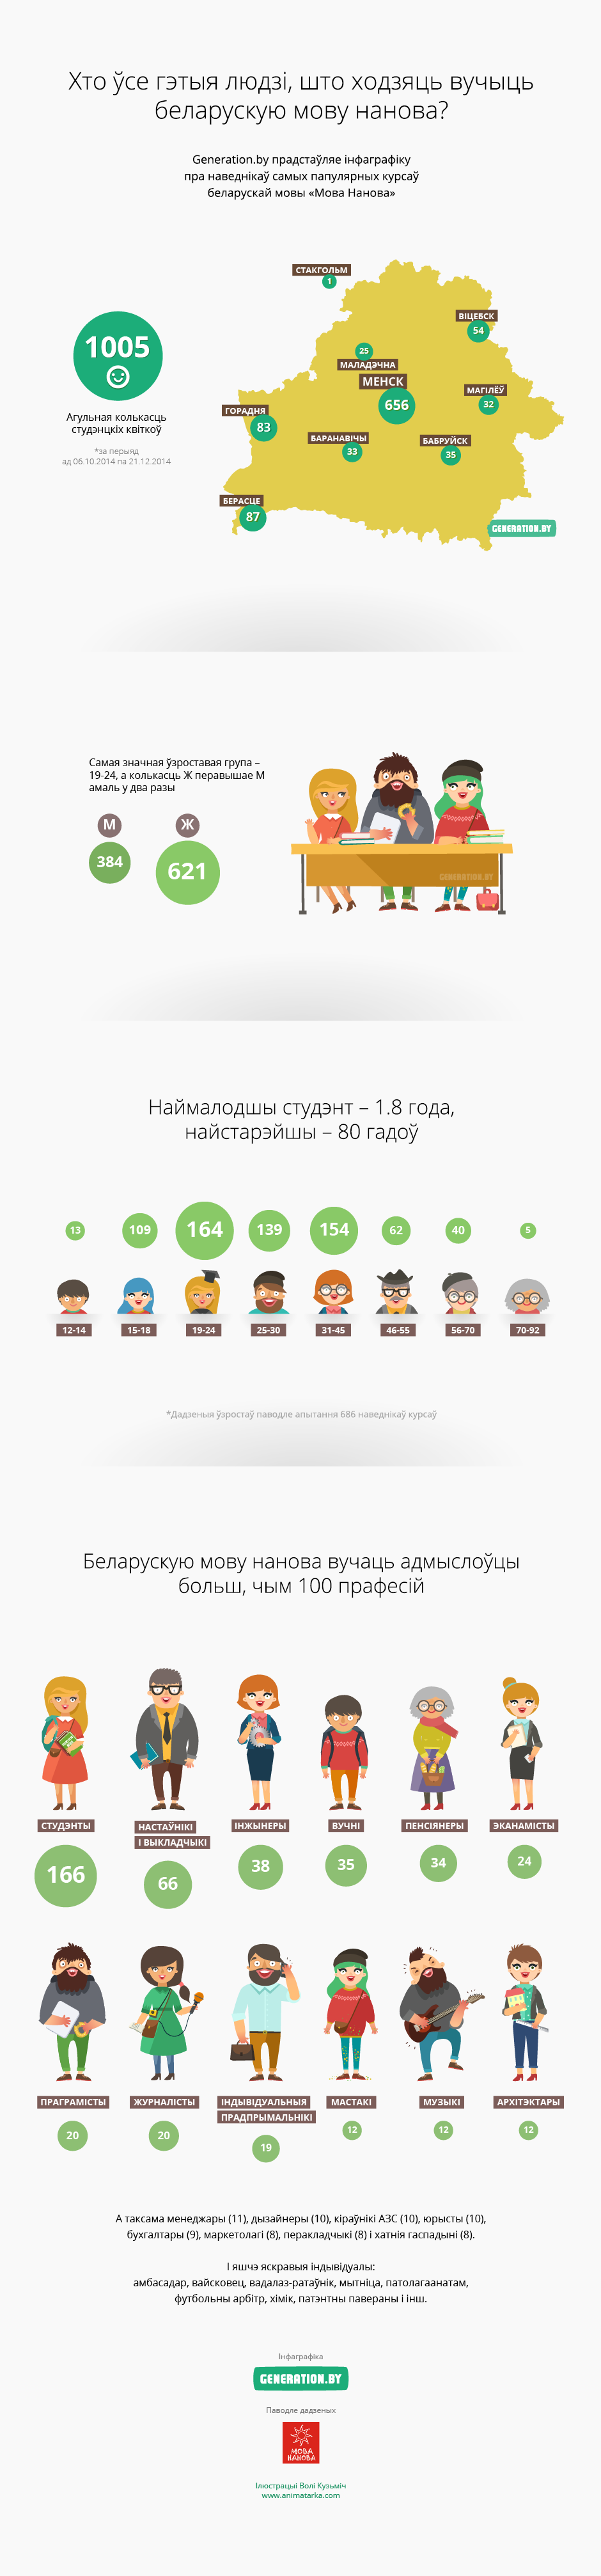 people belarus map occupation professions numbers